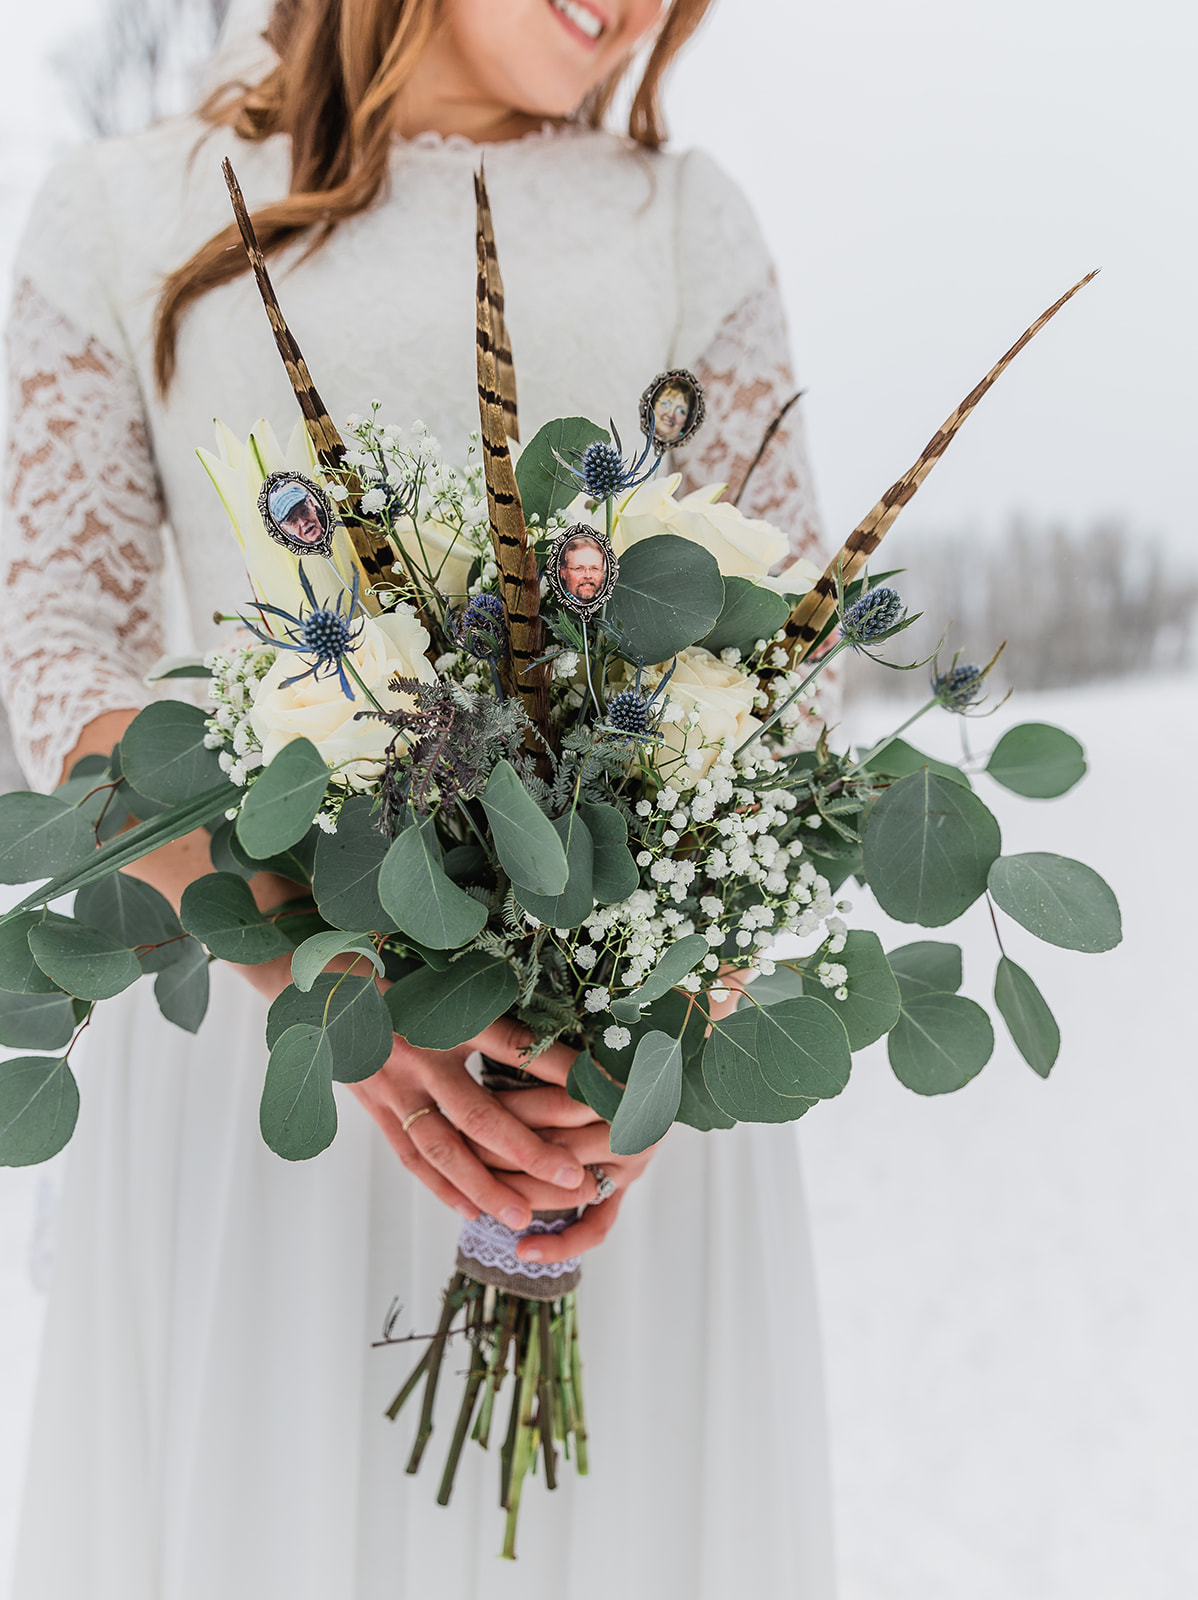 winter wedding bridals country inspired bouquet pheasant feather touches white flowers beautiful greenery elegant and simple winters day photo shoot formals of the bride bridal session wedding look inspiration aesthetic picture for the groom #winterwedding #formals #tony'sgrove #cachevalley #snowcoveredtrees #bellaalderphotography #professionalphotographer #winterwonderland #couplegoals #weddingattire